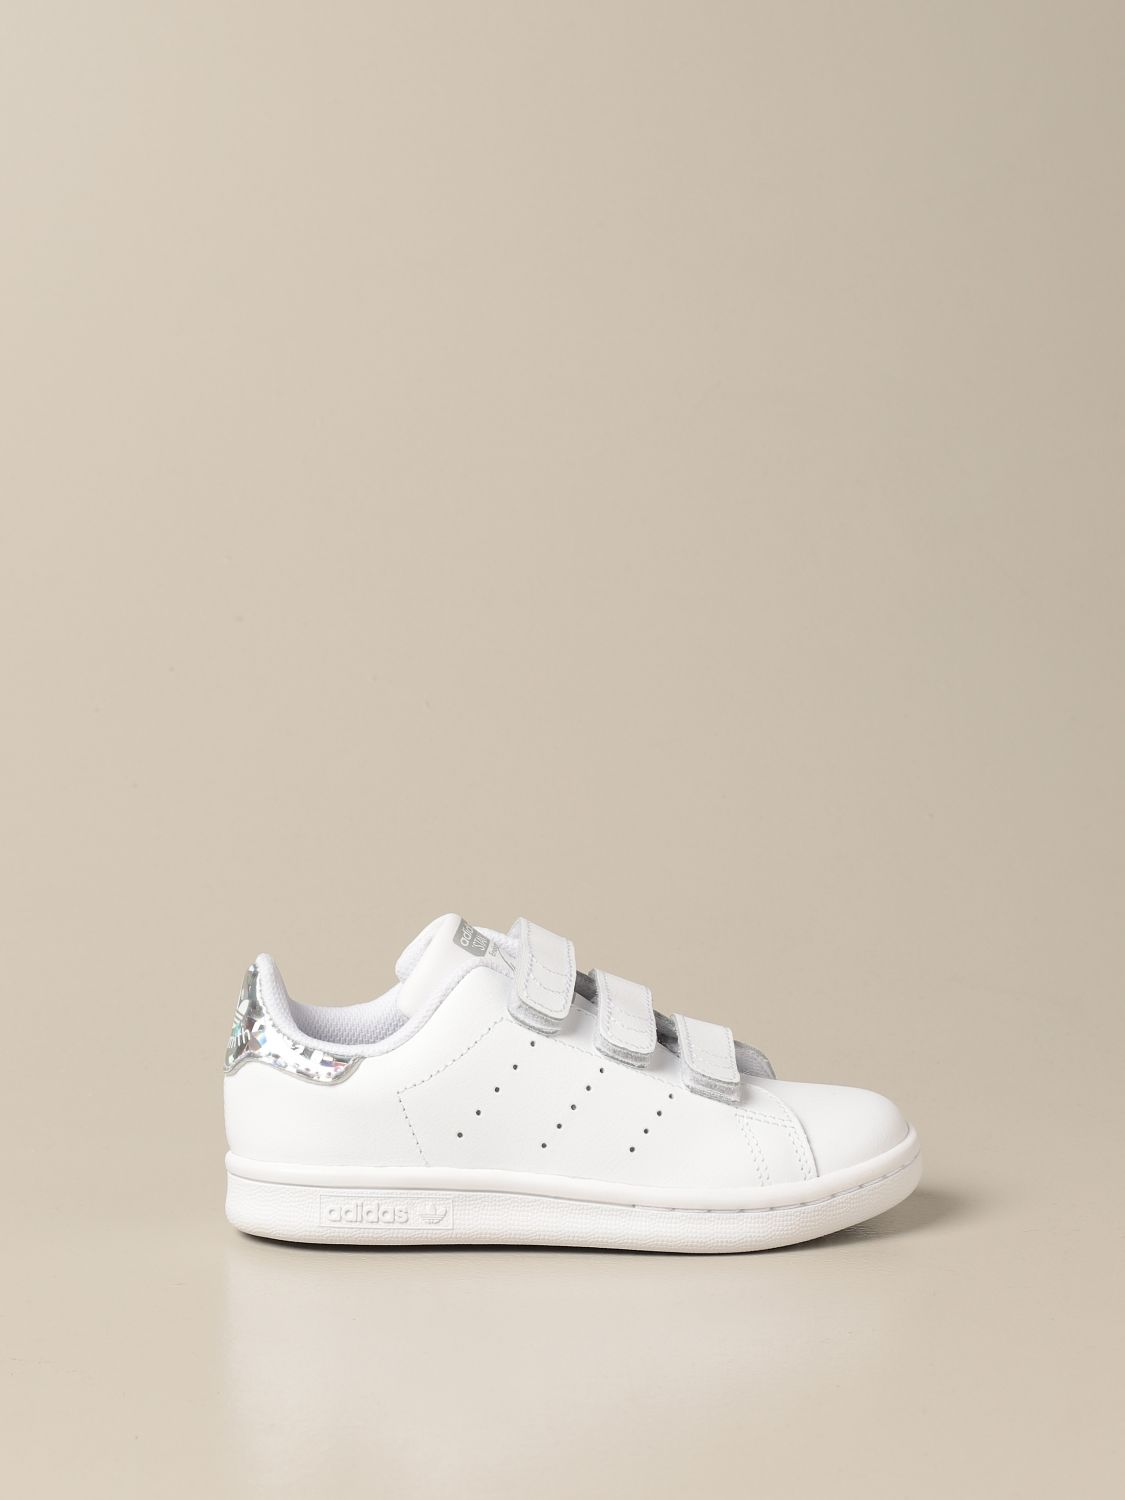 Stan Smith CF Adidas Originals leather sneakers